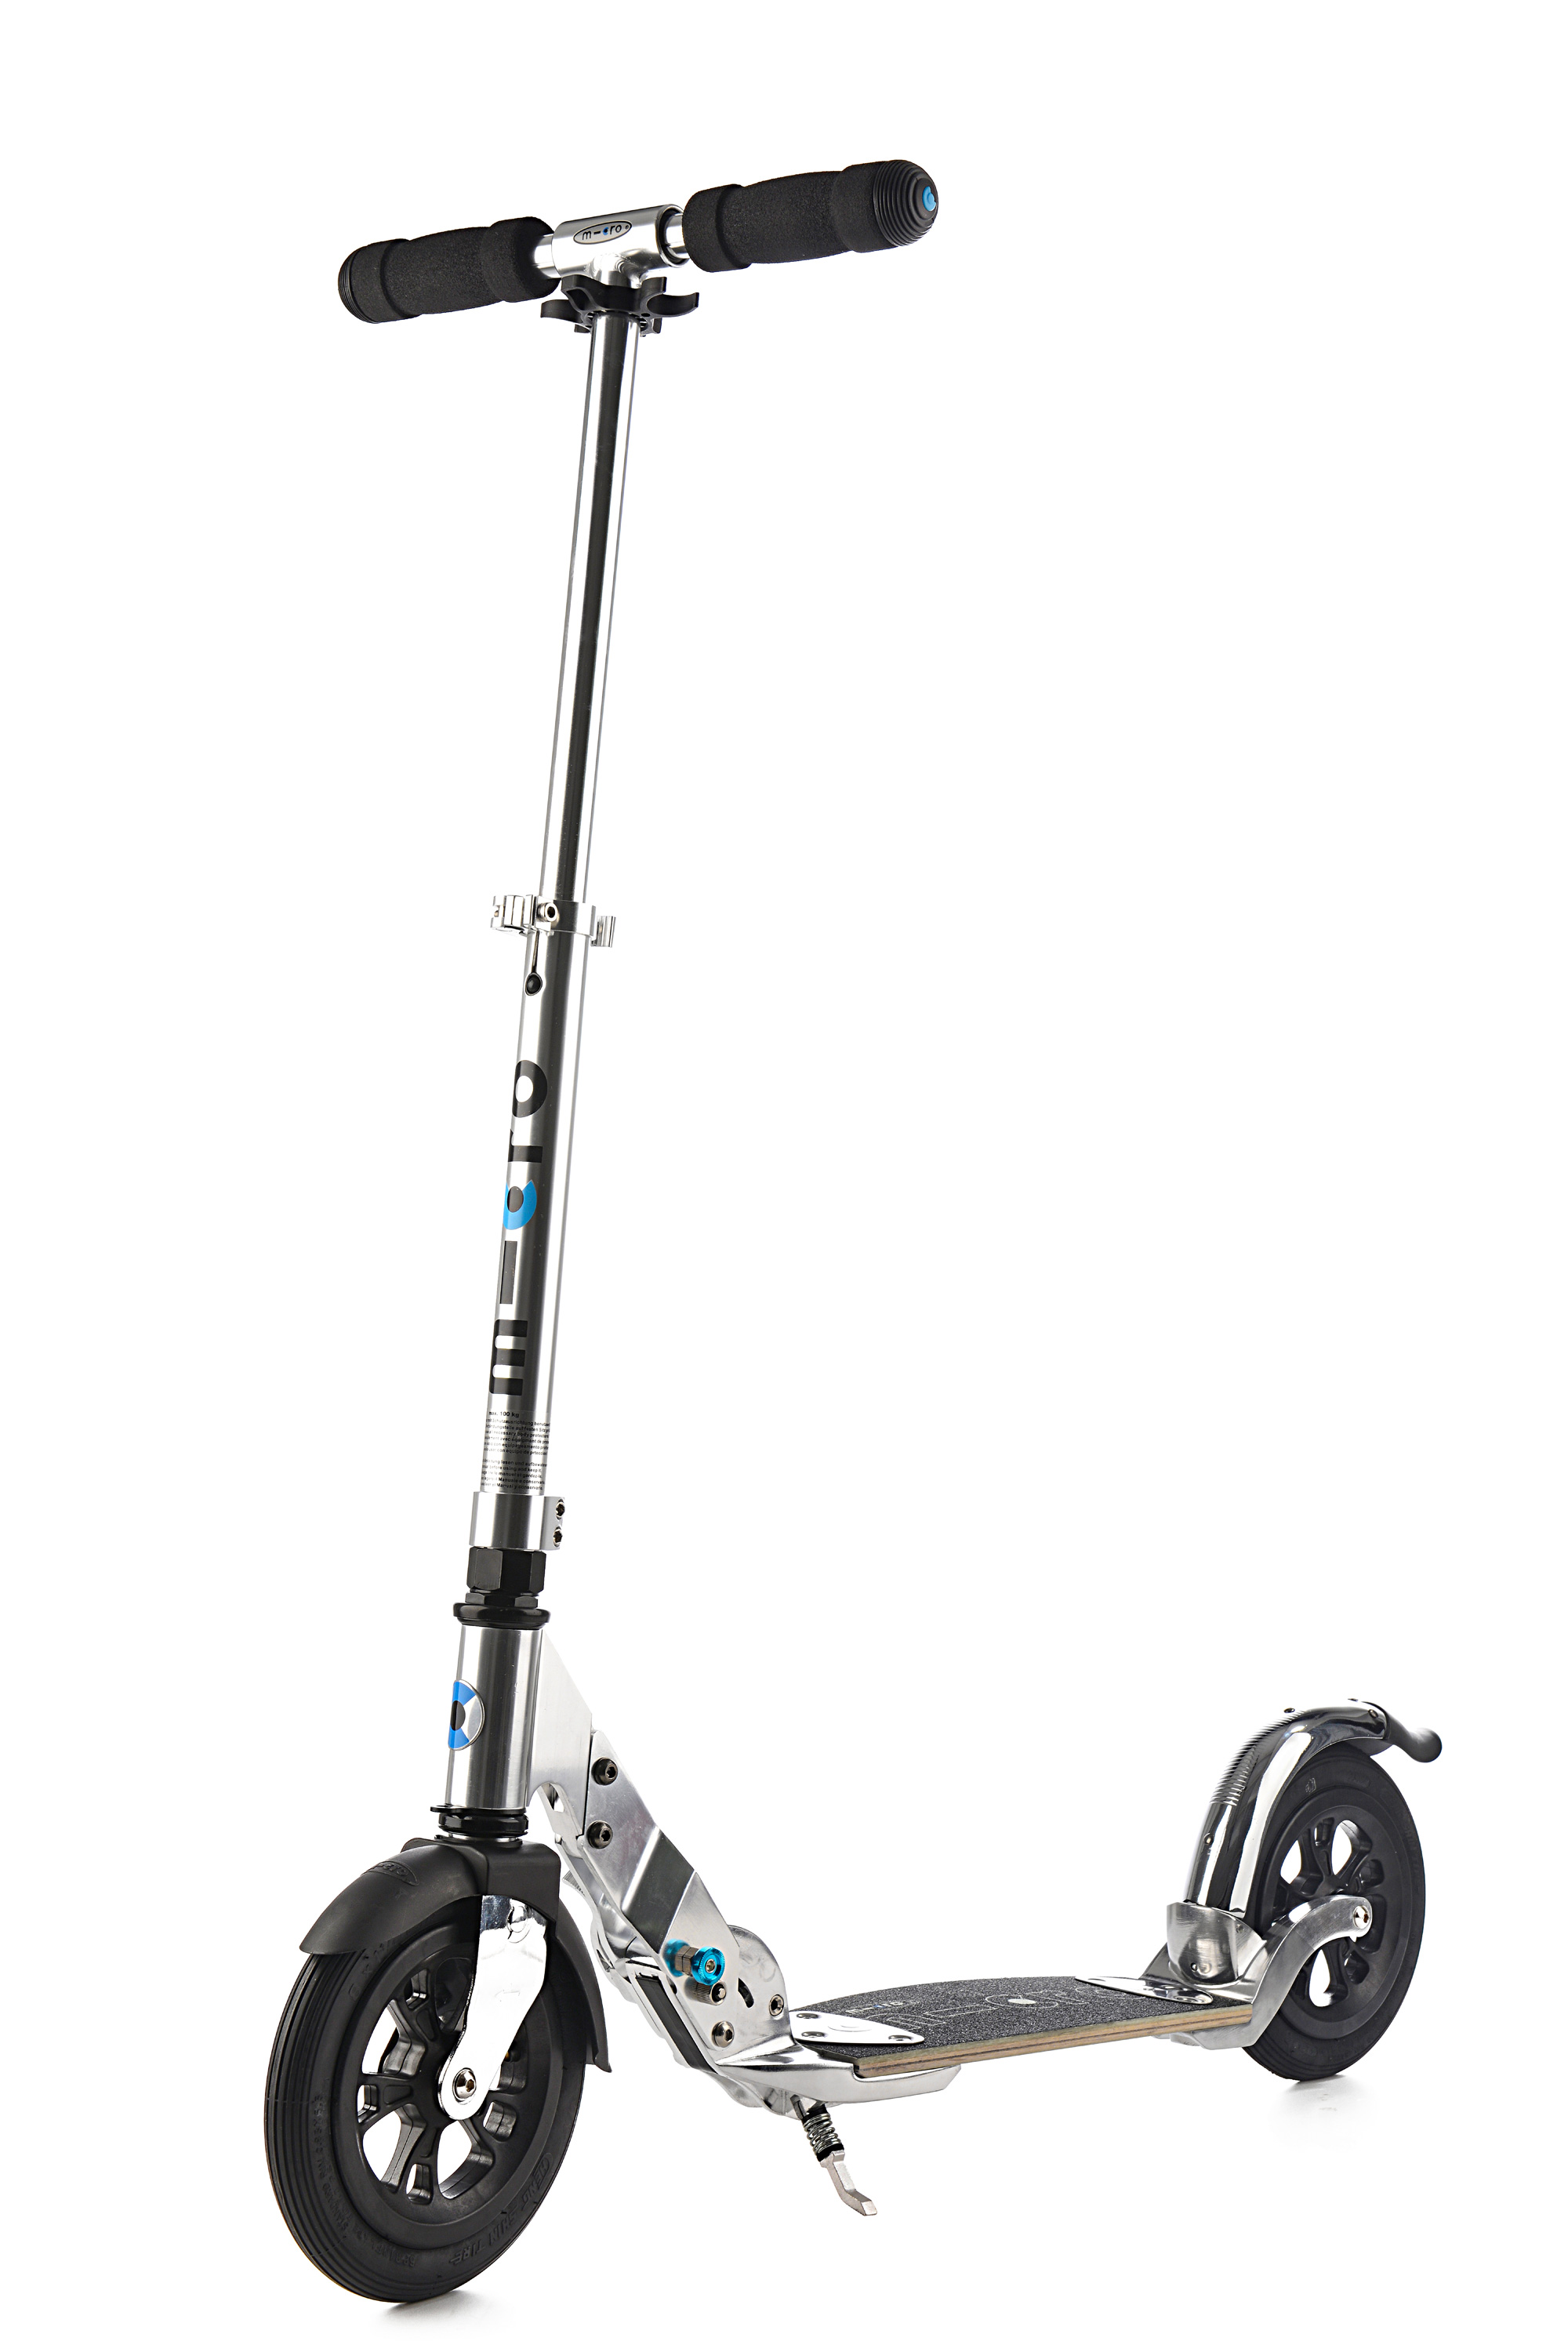 micro scooter flex air 200 mm tretroller microscooter. Black Bedroom Furniture Sets. Home Design Ideas